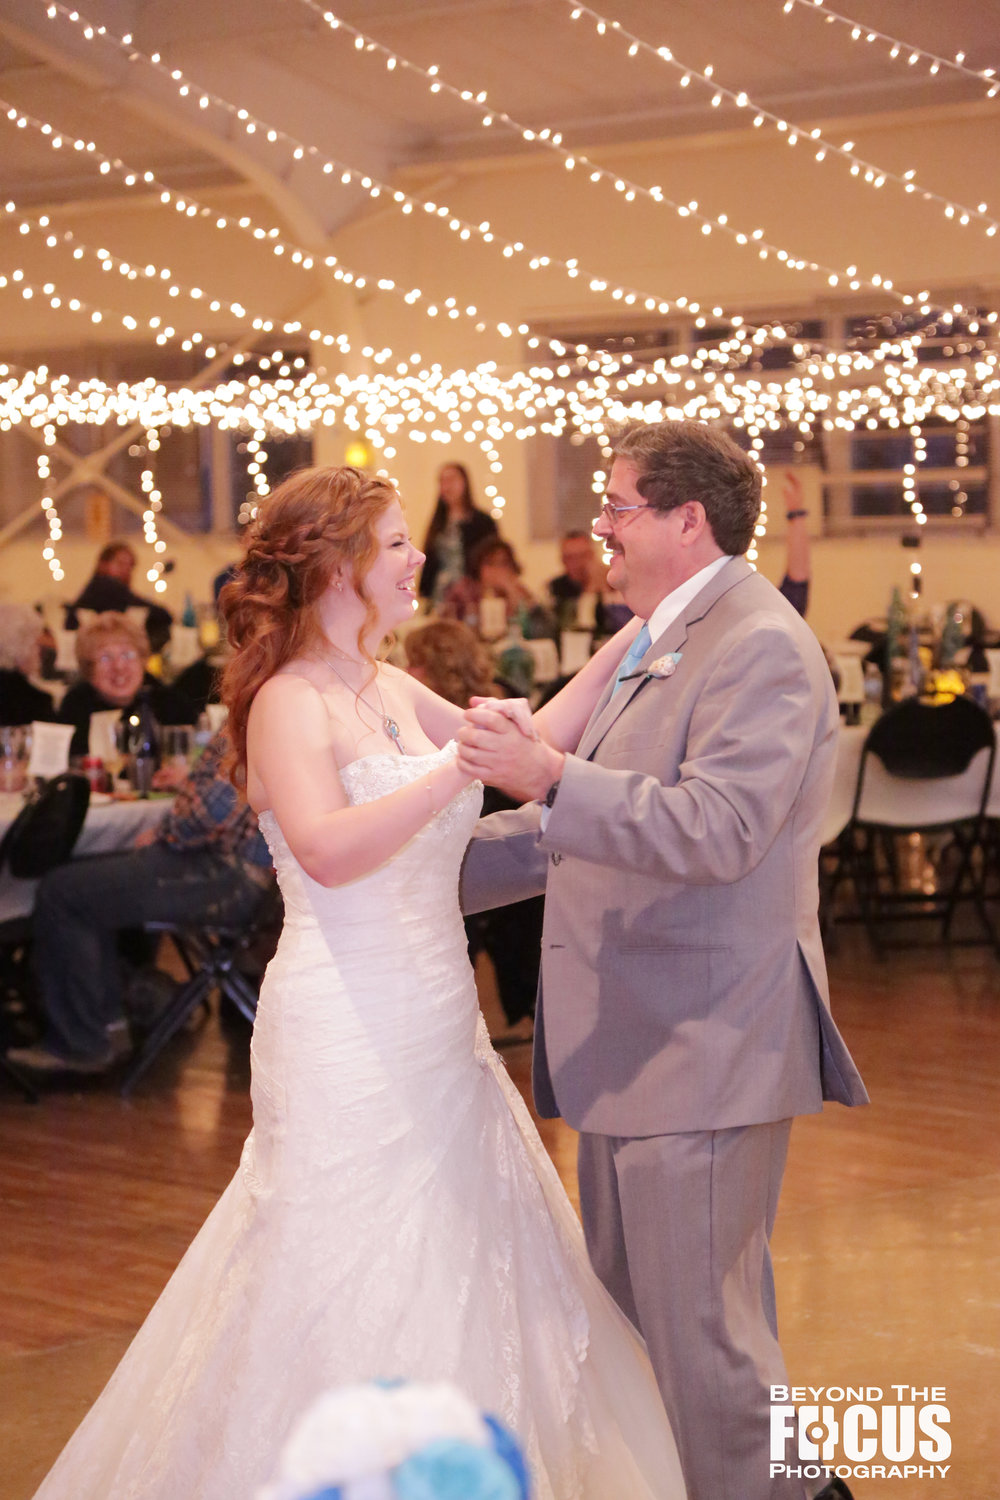 Alex_Katie_WeddingReception__99.jpg